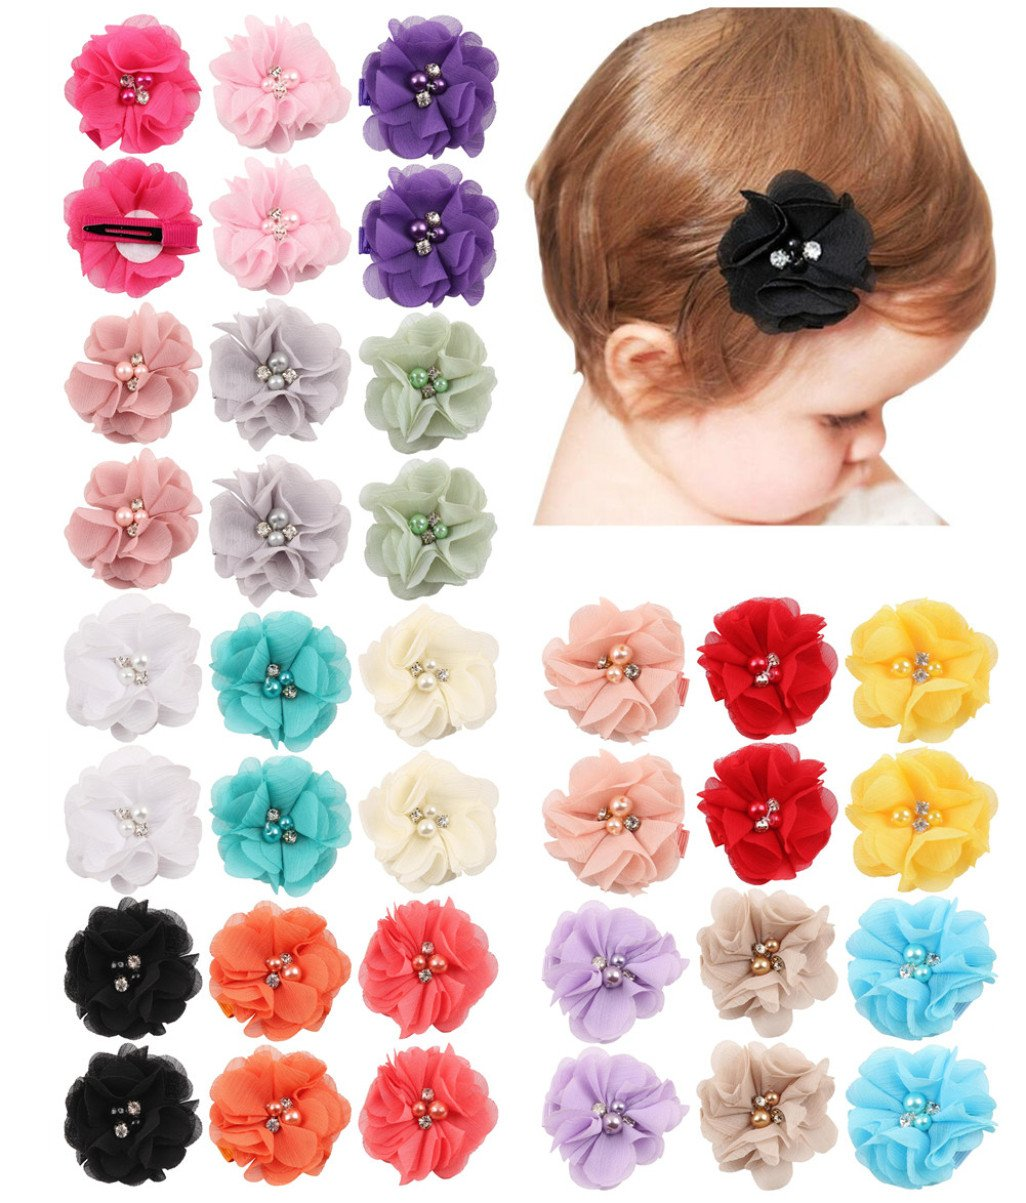 QandSweet 36 Pack Baby Girl's Hair Clips with Hand-sewn Beads Flower Girl Teens Kids Toddlers by QandSweet